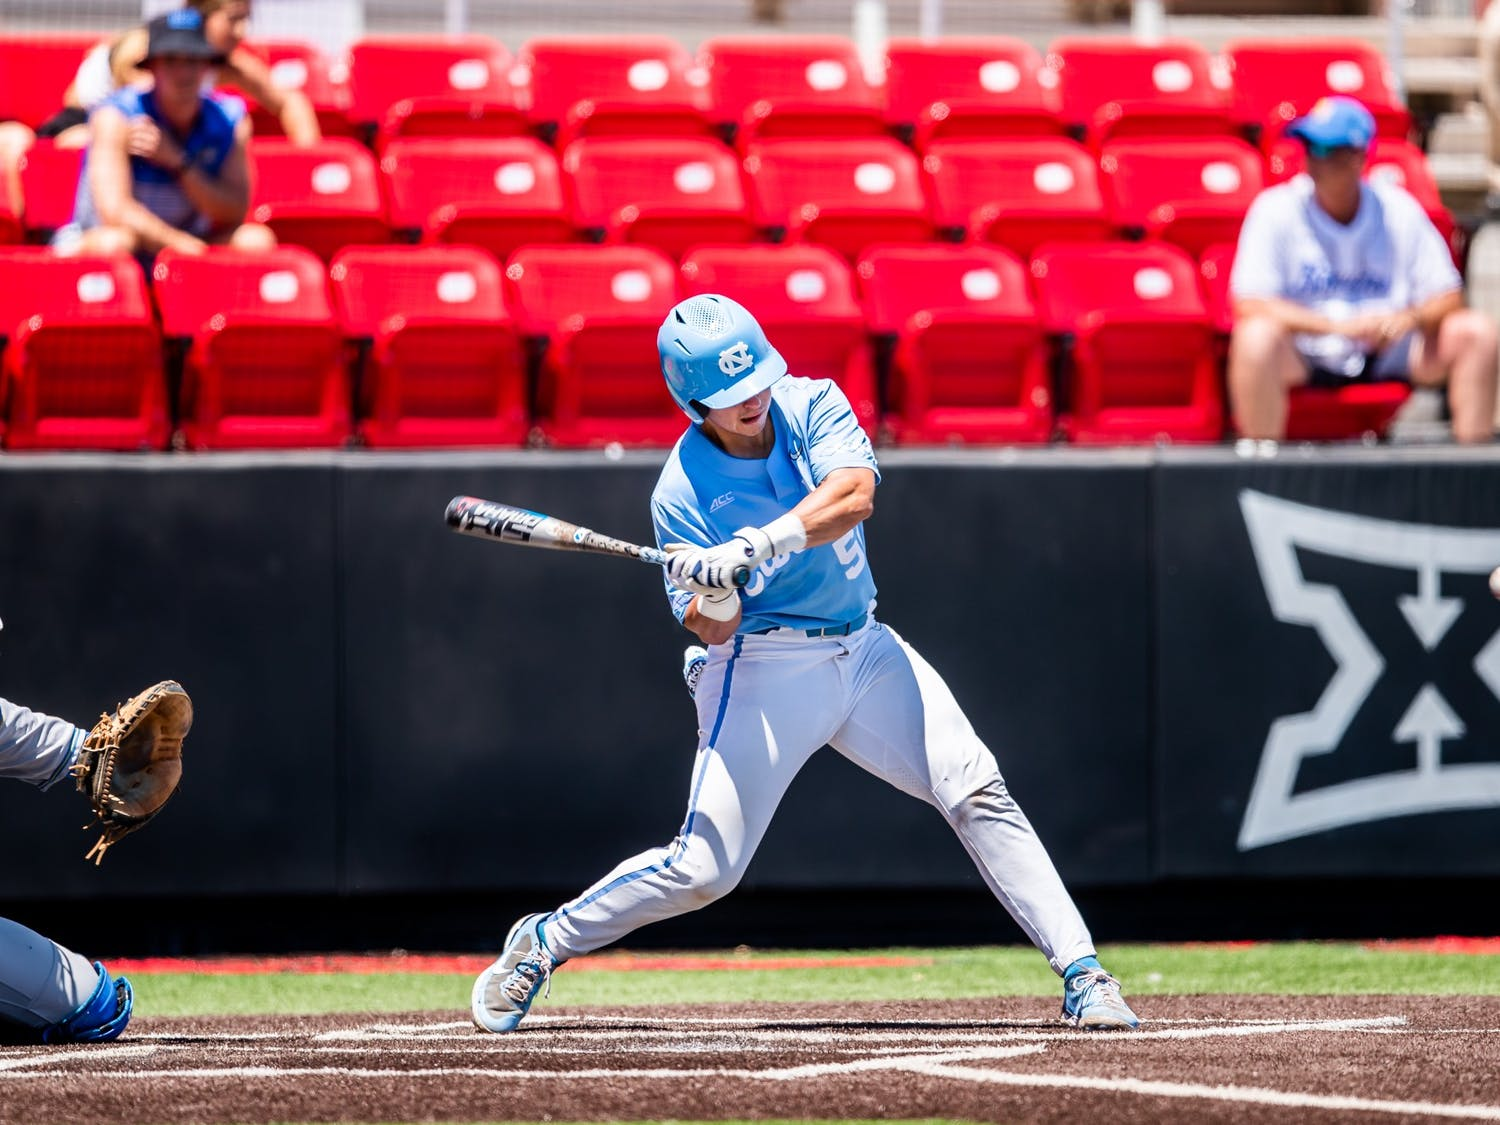 UNC first-year catcher Tomas Frick (52) hits the ball at the NCAA tournament game against UCLA on Sunday June 6, 2021 in Lubbock, TX. The Tar Heels lost 2-12. Photo courtesy of Elise Bressler.